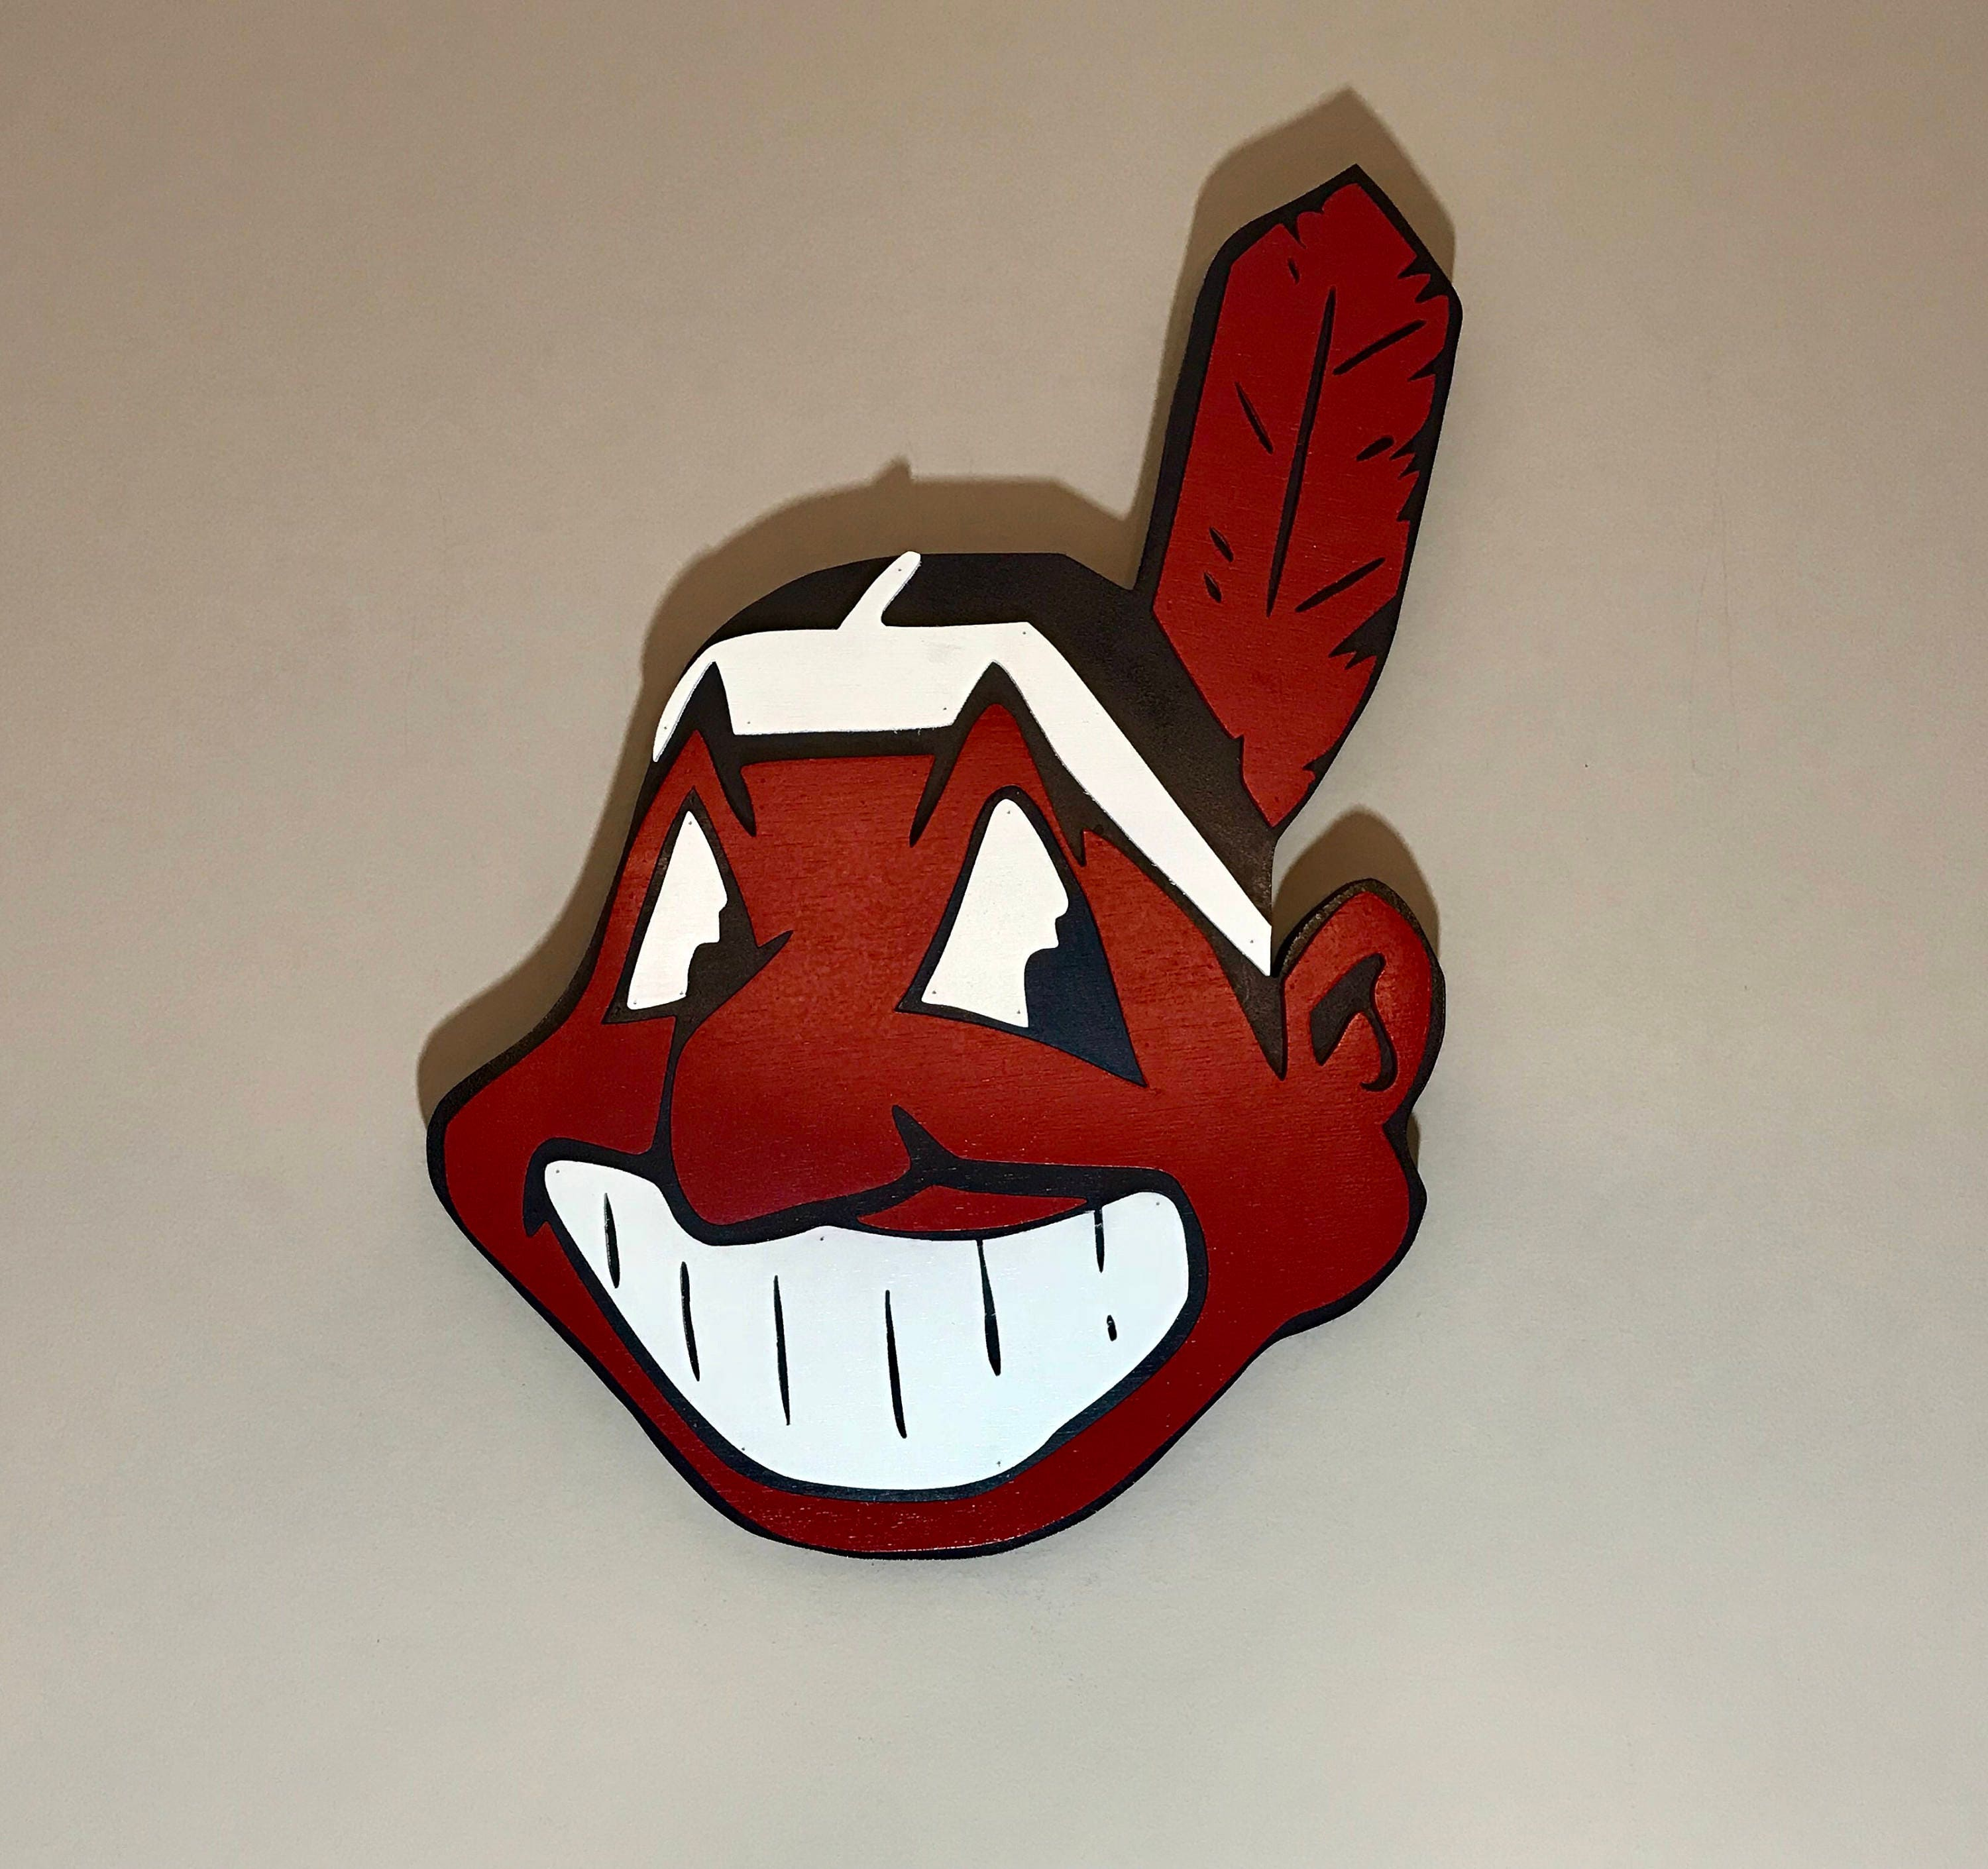 Cleveland indians chief wahoo 3d hand scrolled wood logo wall zoom biocorpaavc Choice Image